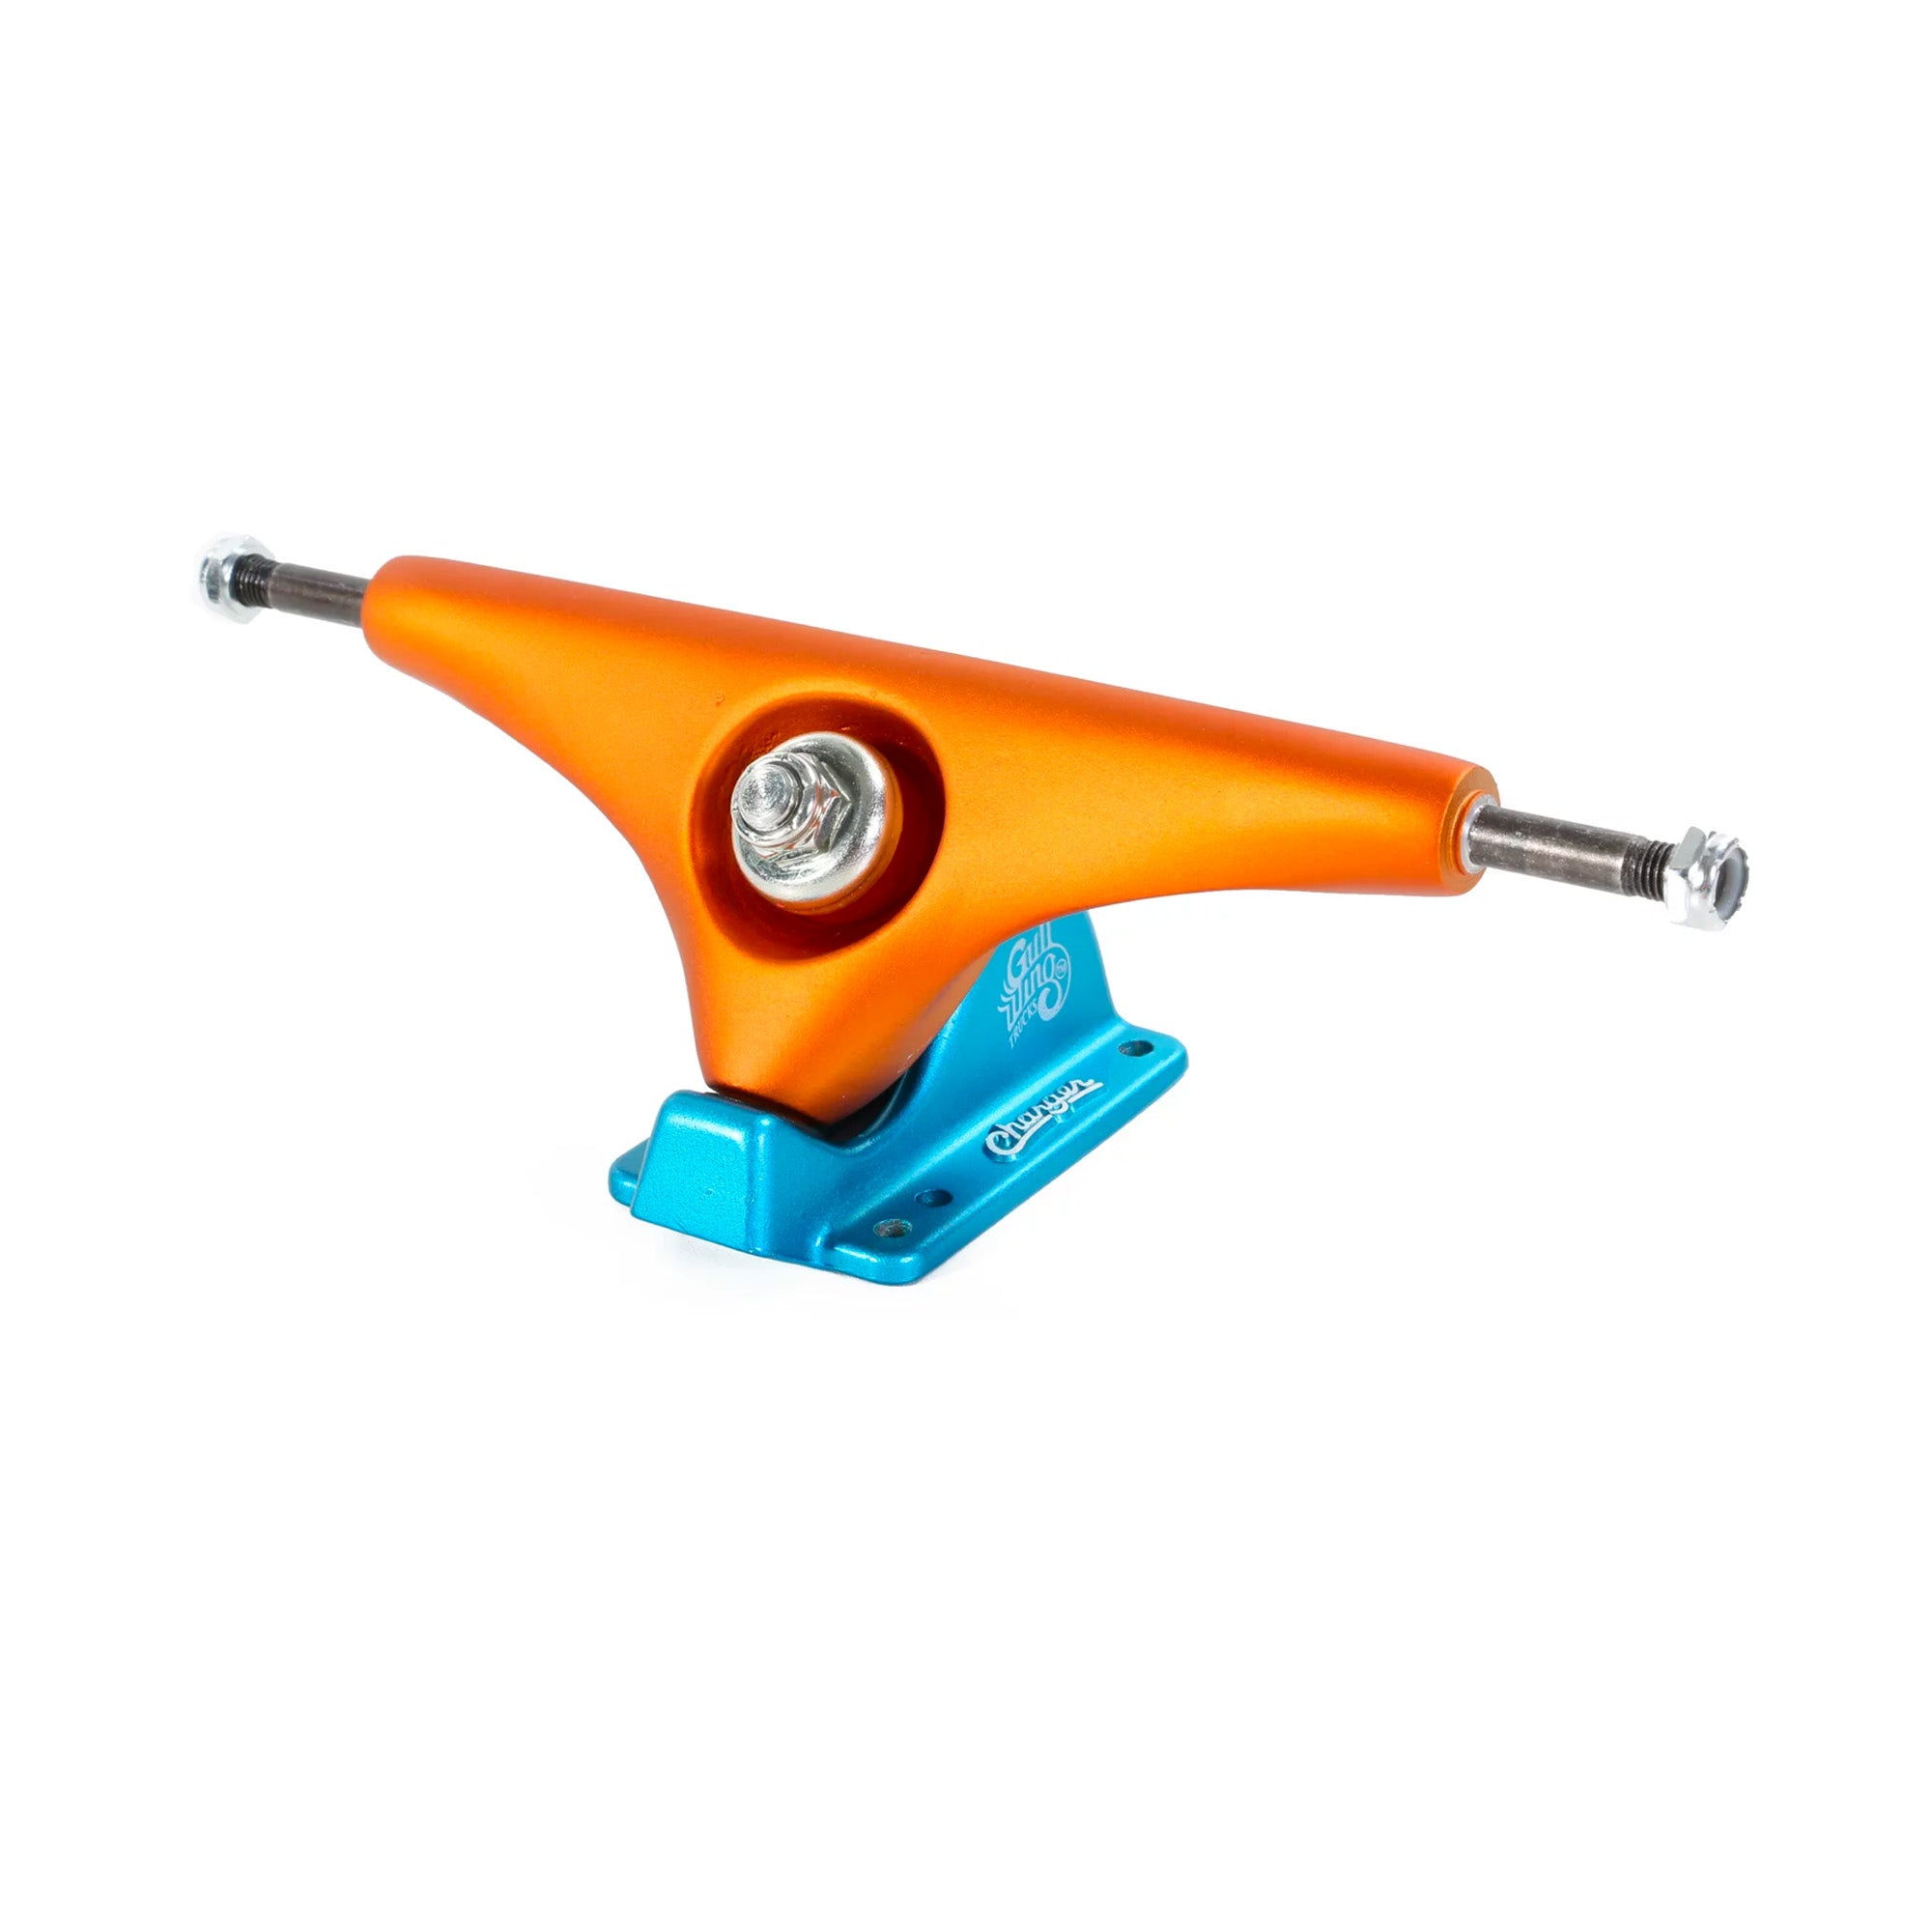 Gullwing Charger 10.0 Truck - Silver/Orange/Blue 50 Degrees